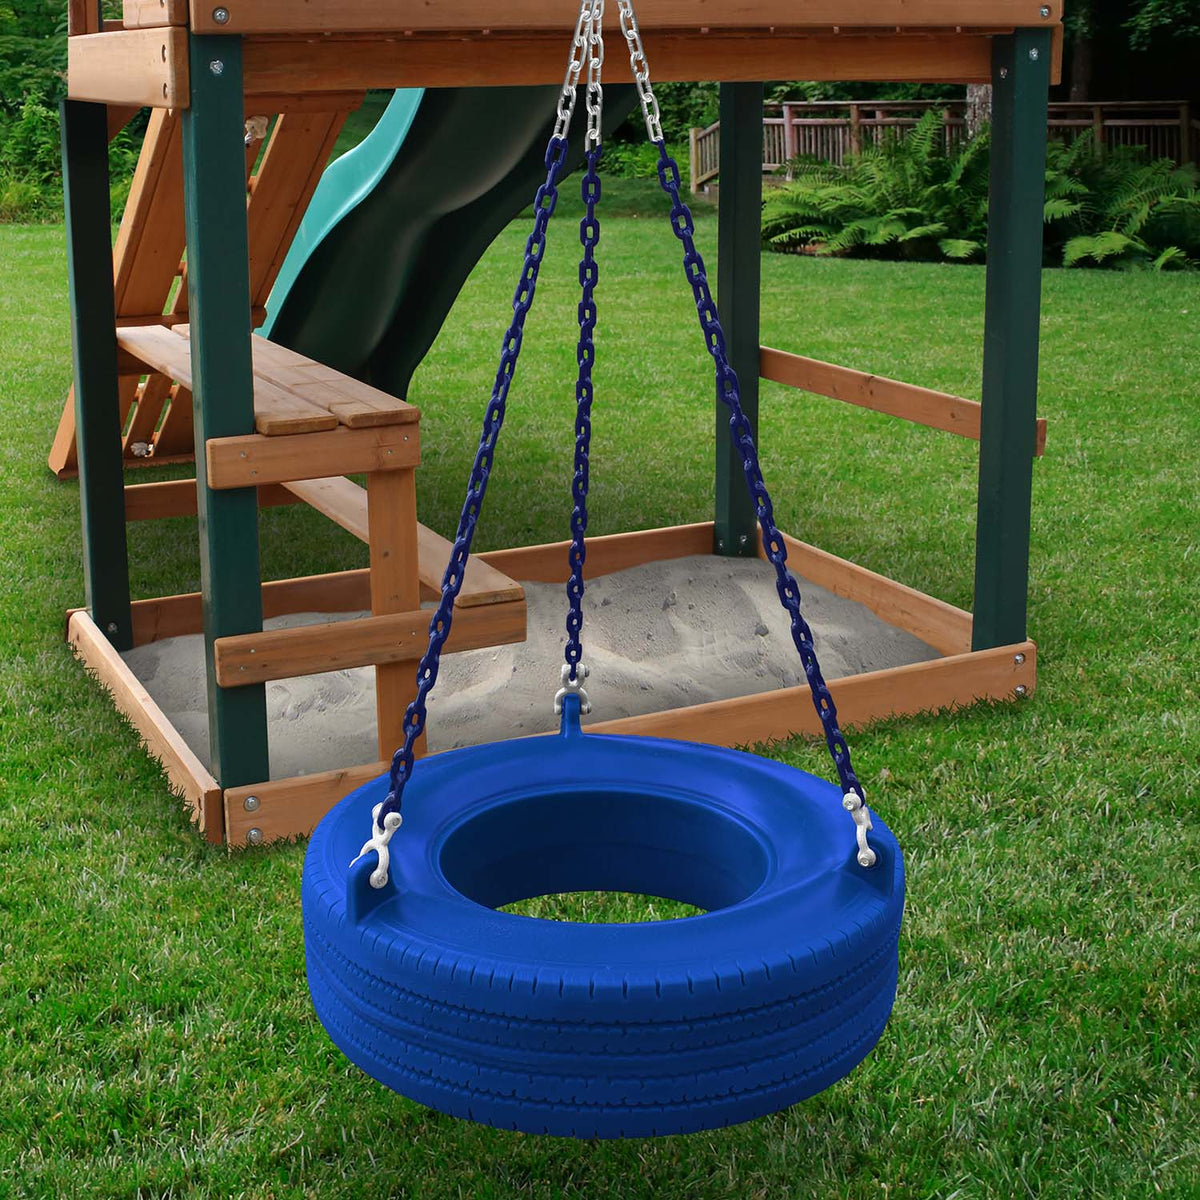 Gorilla-Playsets-Tire-Swing-Blue